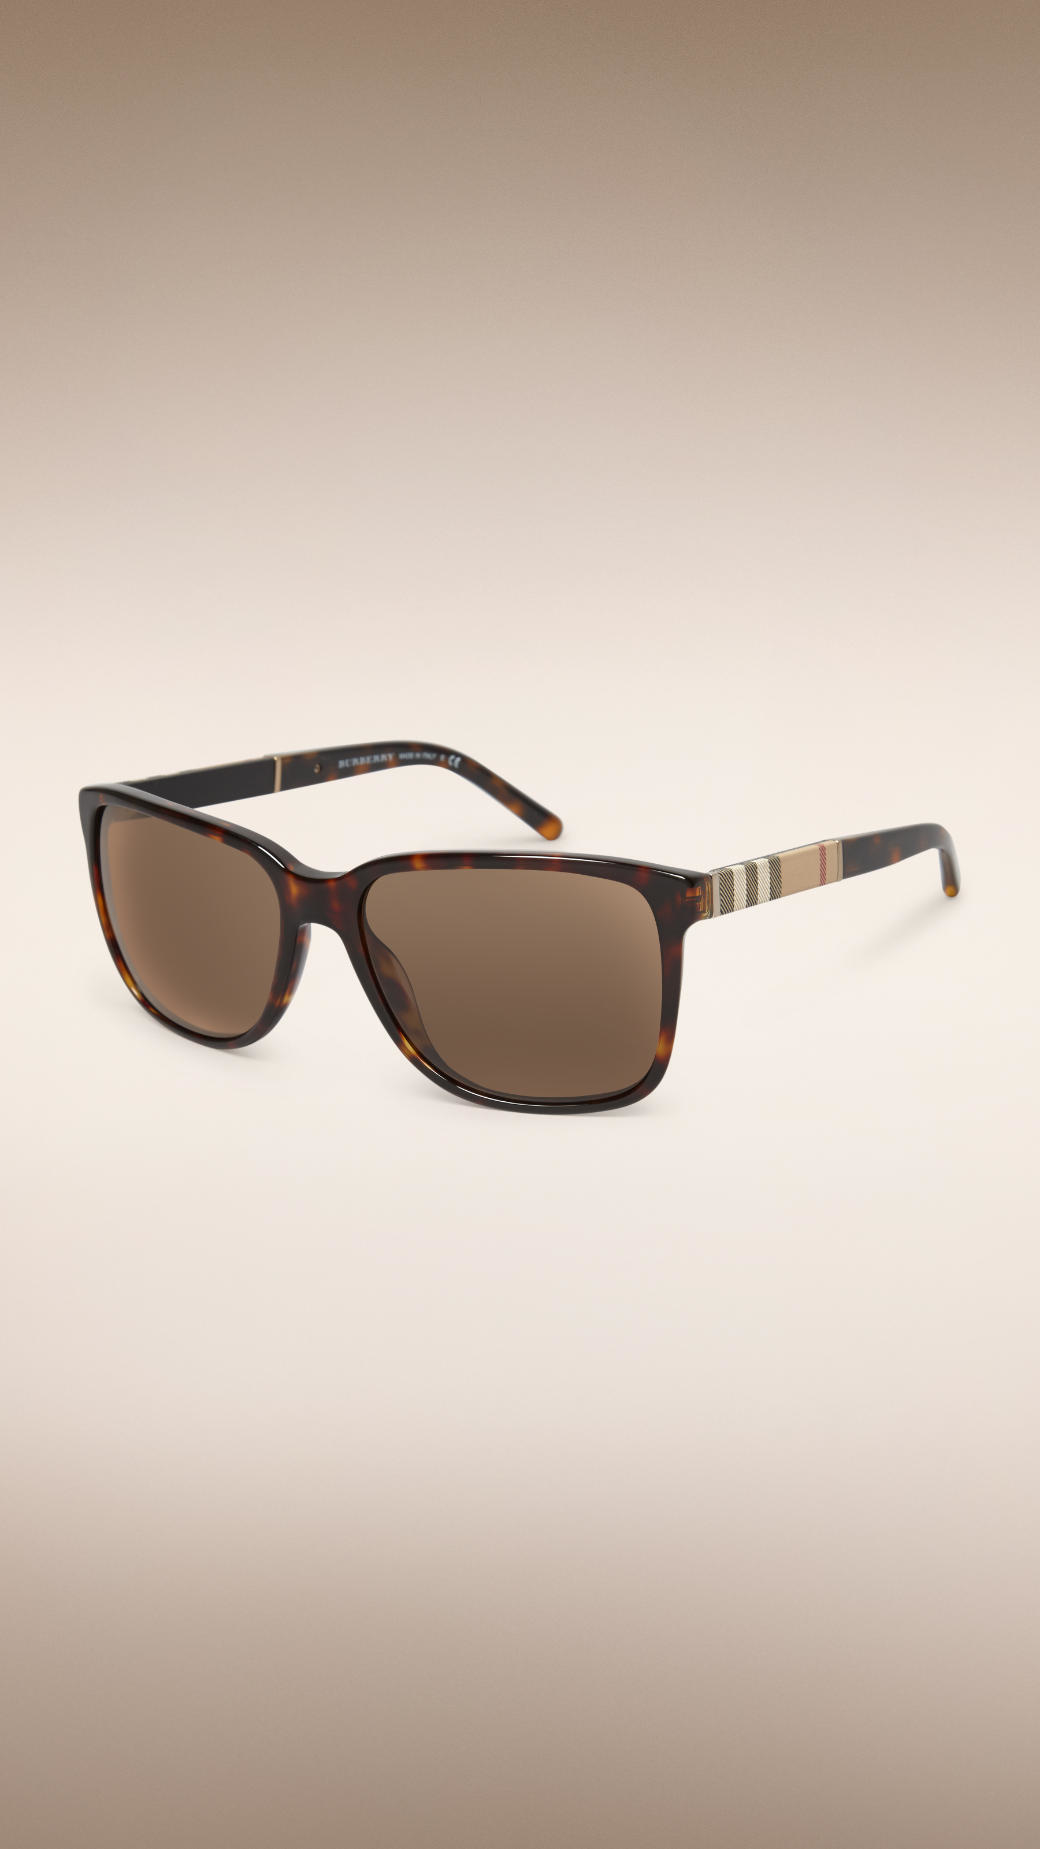 4fb227ad586 Burberry Square Frame Check Detail Sunglasses in Brown for Men - Lyst